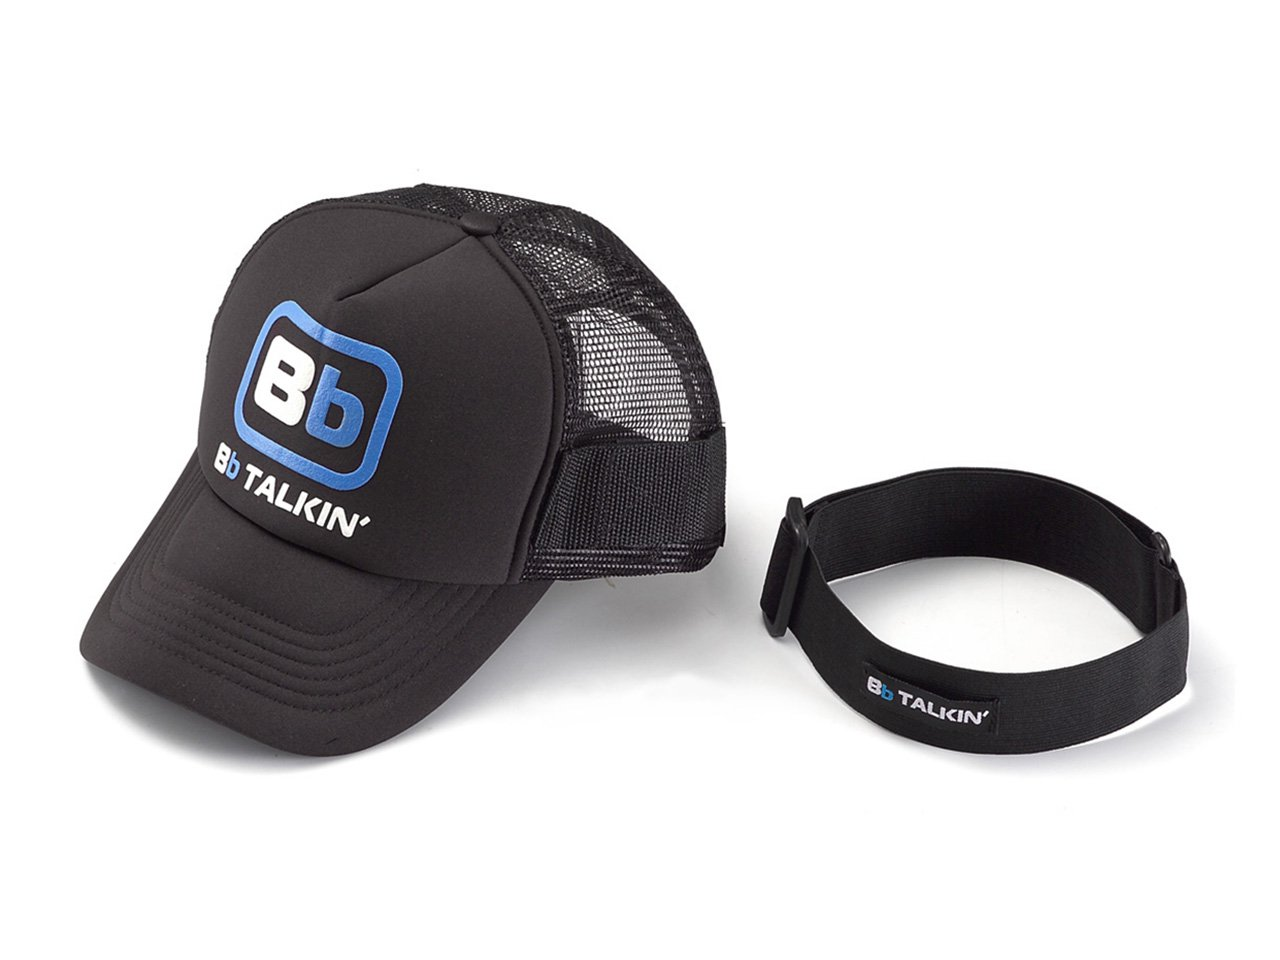 BbTALKIN cap and armstrap m01